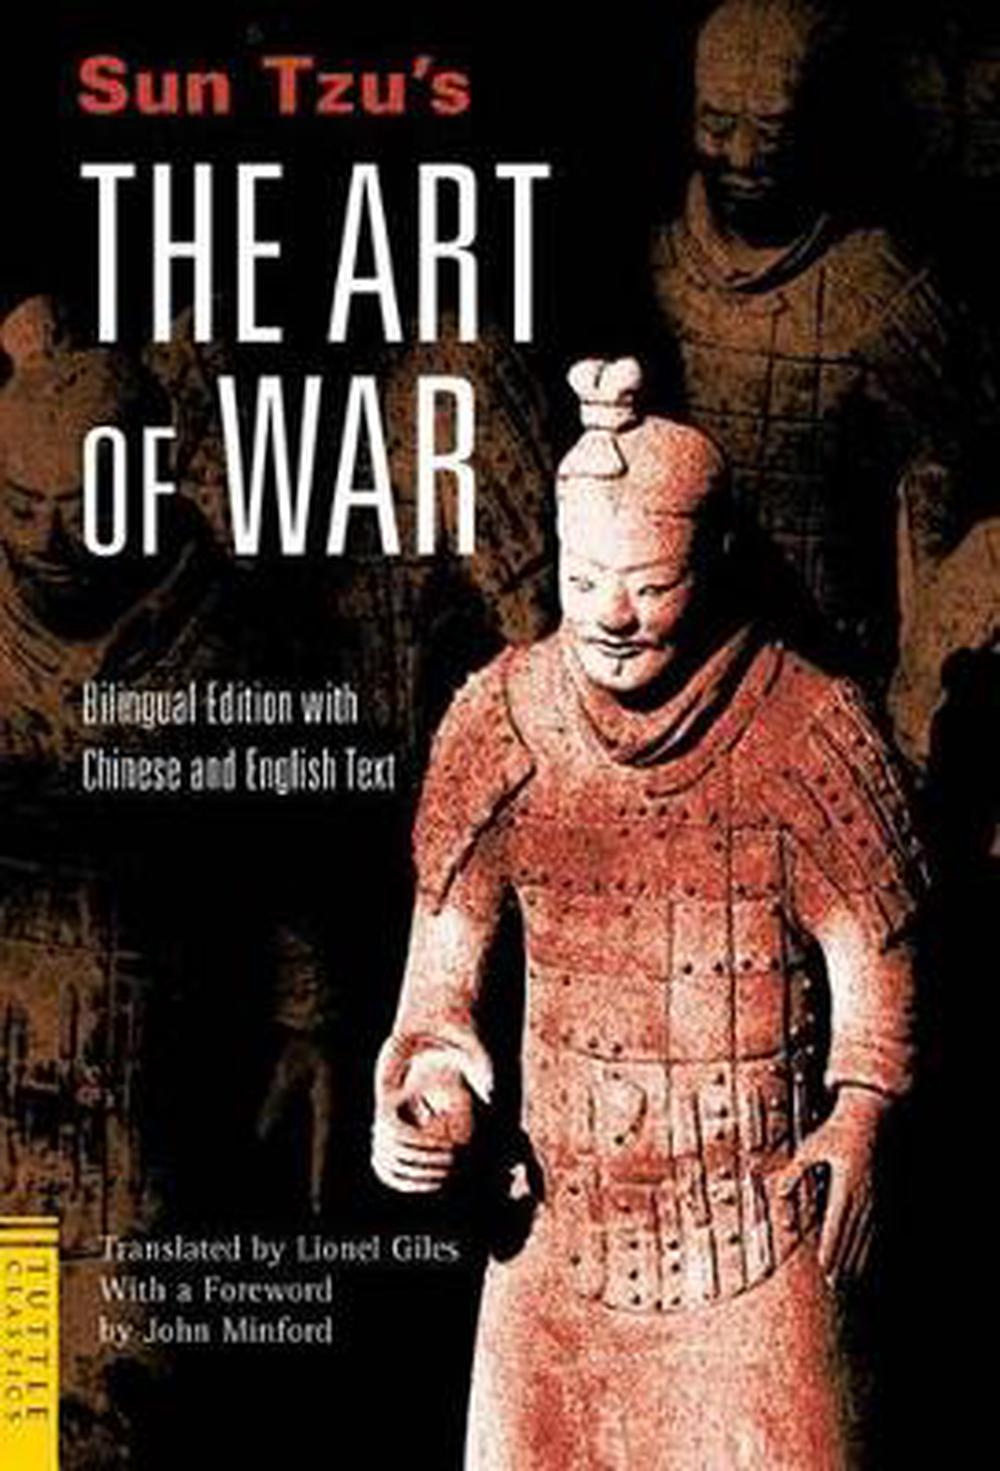 machiavelli and lao tzu war comparison Although lao-tzu and machiavelli wrote centuries apart from each other these two leaders share similar believes on government lao-tzu describes his ideas in thoughts from the tao-te-ching machiavelli states his ideas in the qualities of a prince.